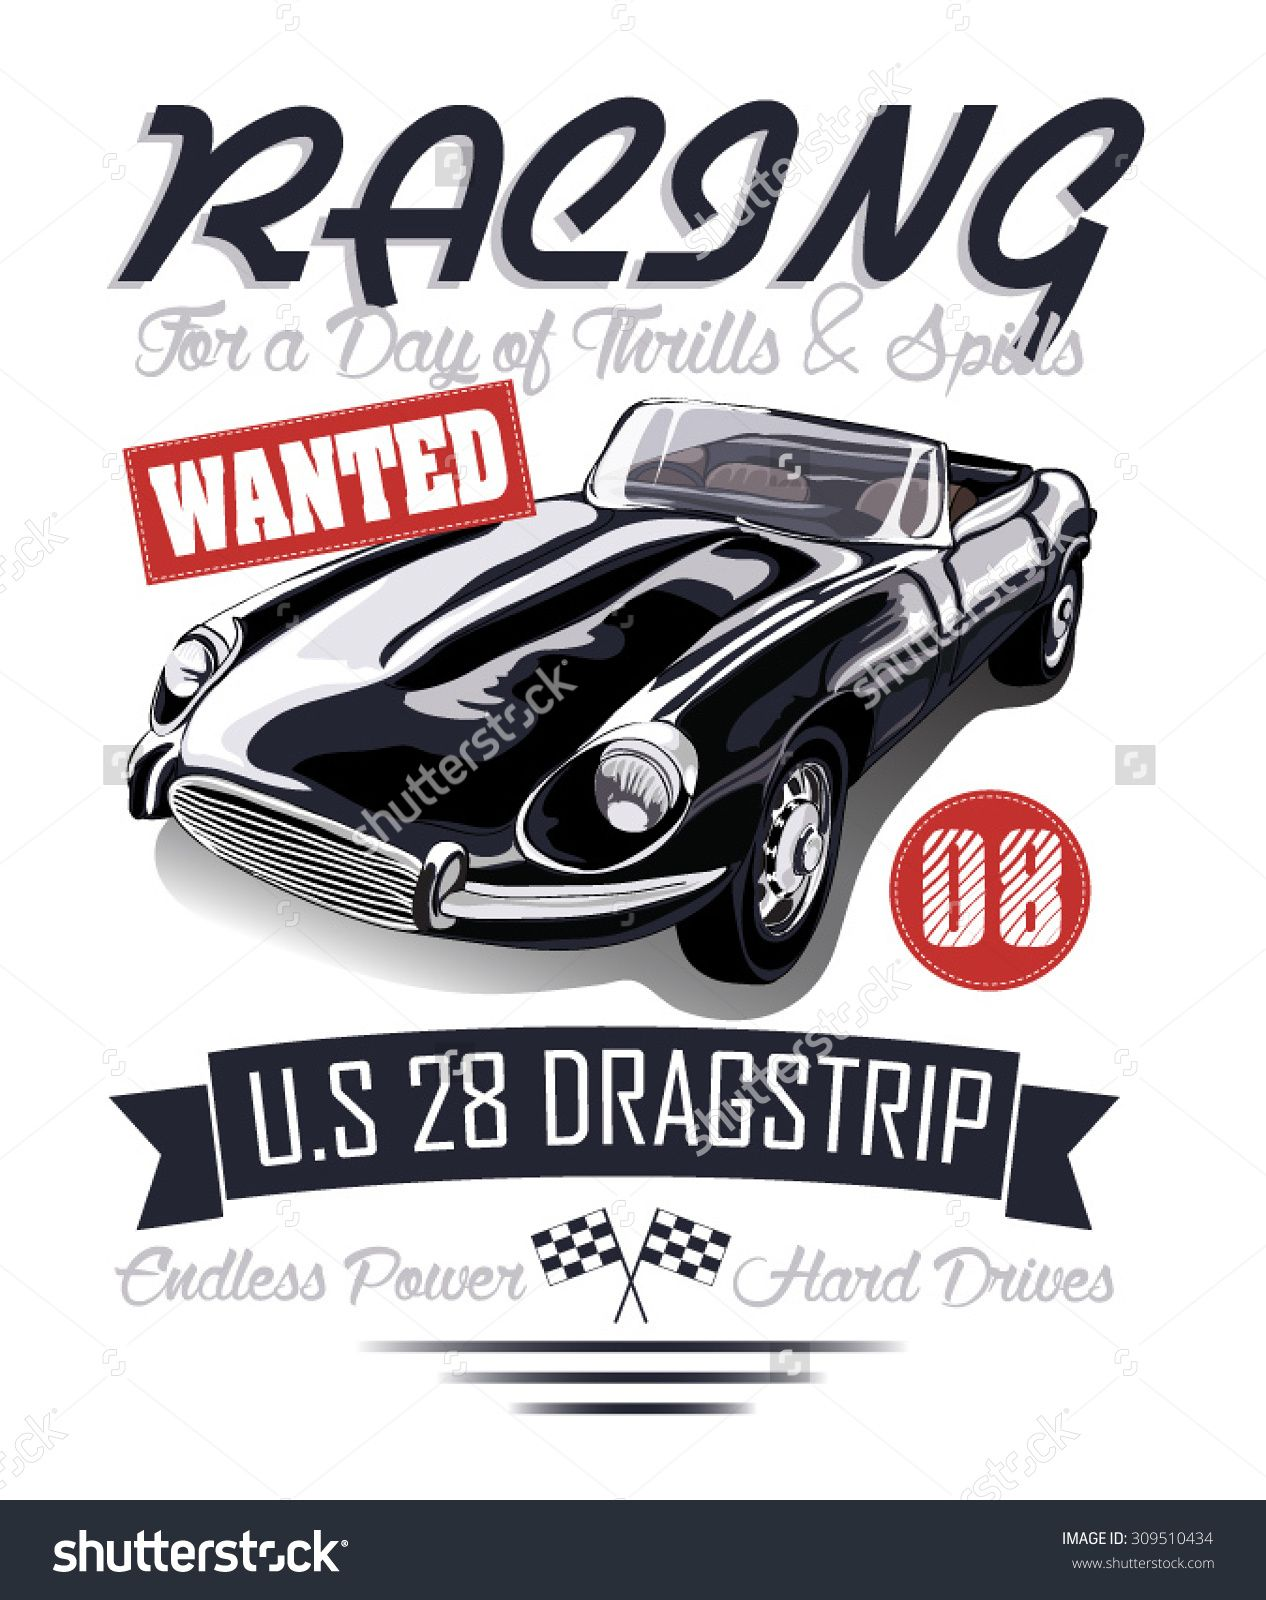 vintage race car for printingrace postert shirt graphicsvintage